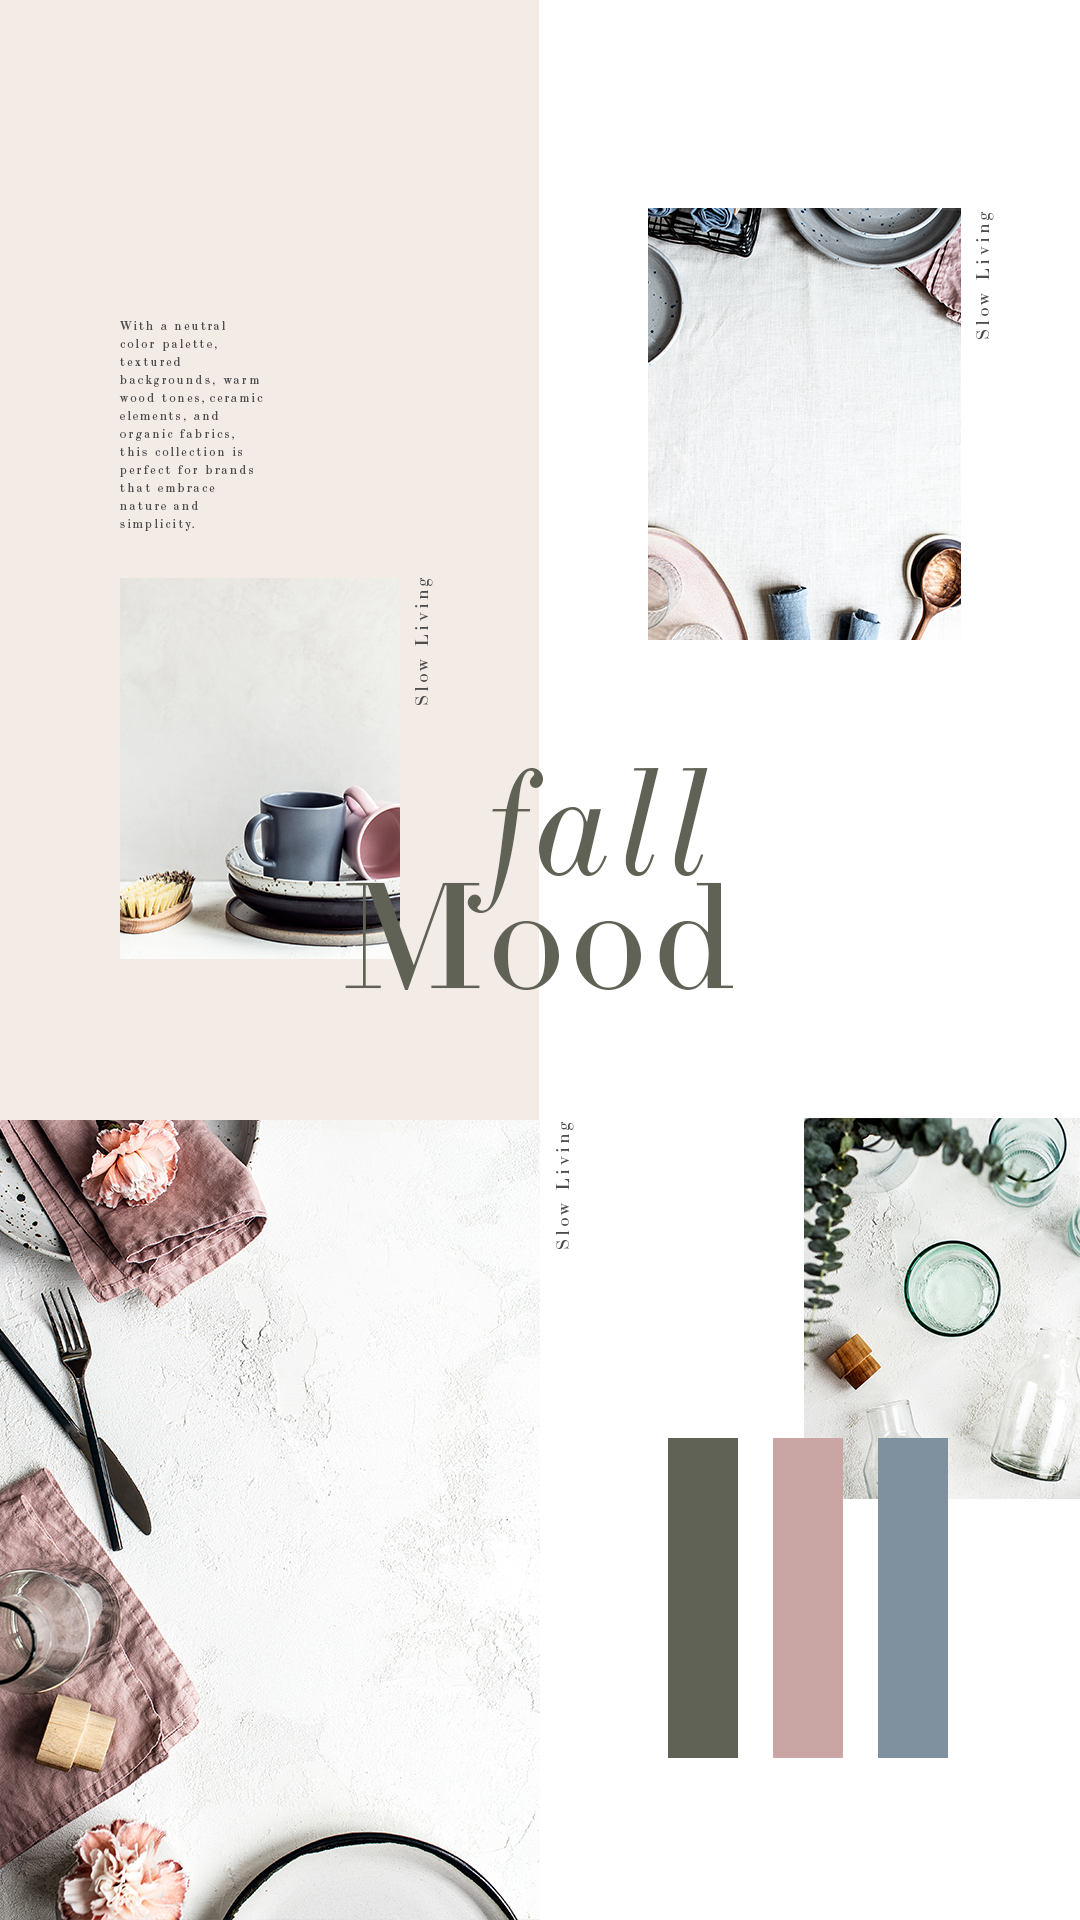 Feminine fall colors in a warm, neutral palette. This collection features minimal, organic, rustic farmhouse elements and embraces slow, intention living.